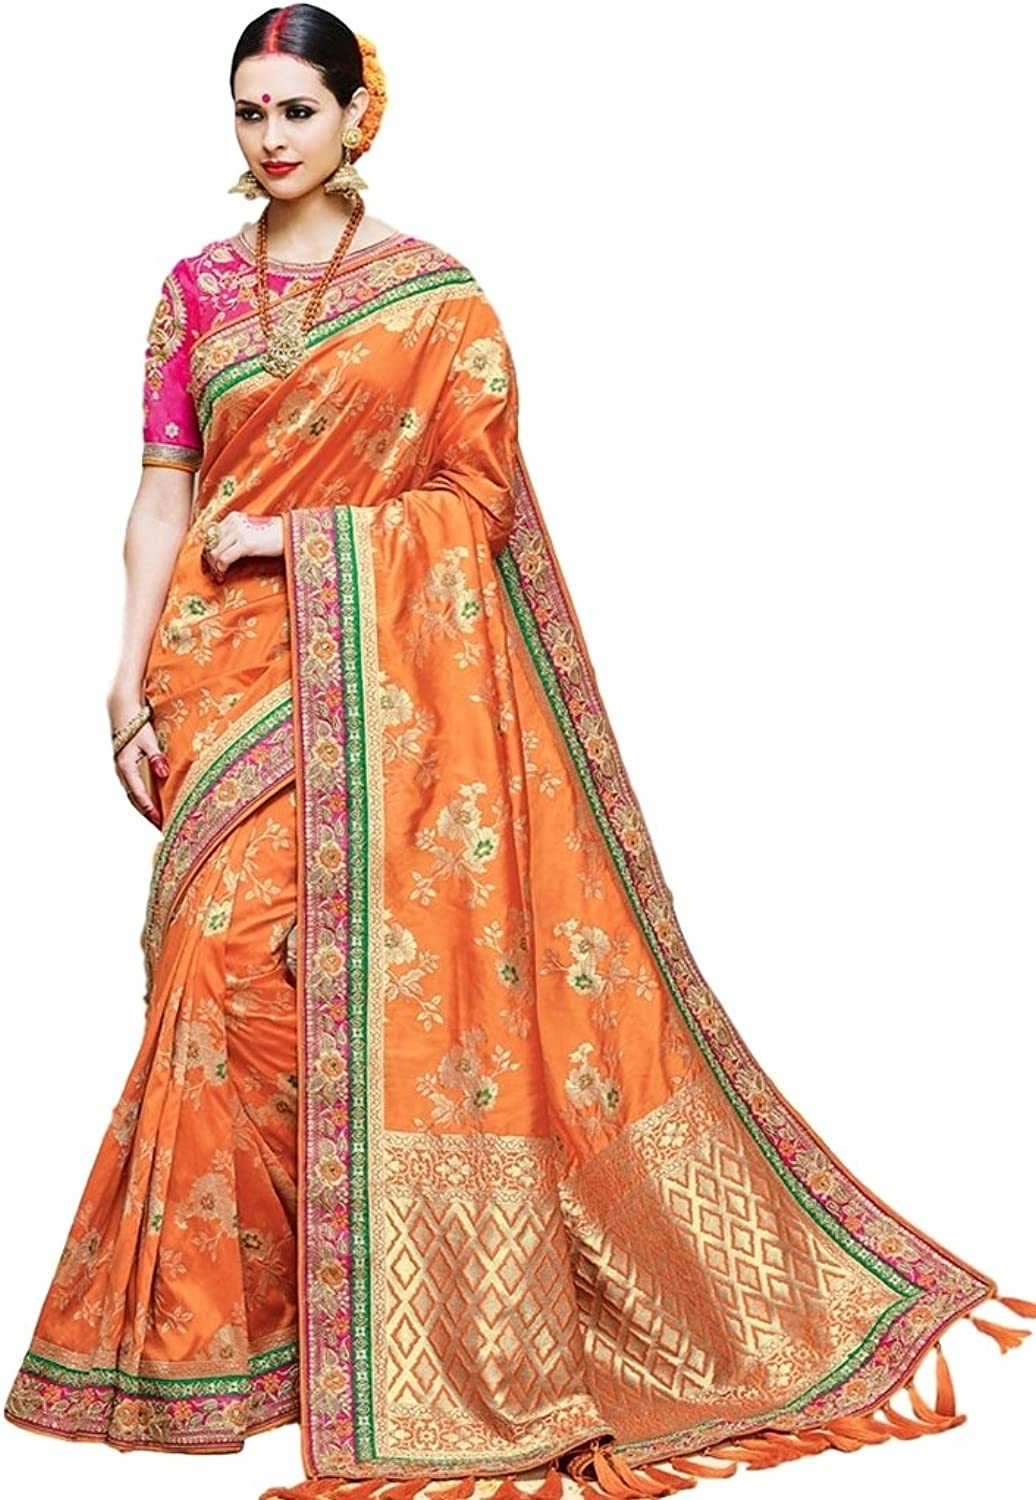 EthnicWear orange Traditional Cultural Festival Wear Indian Art Silk Zari Embroidery Patch Border Zari Work Saree Sari